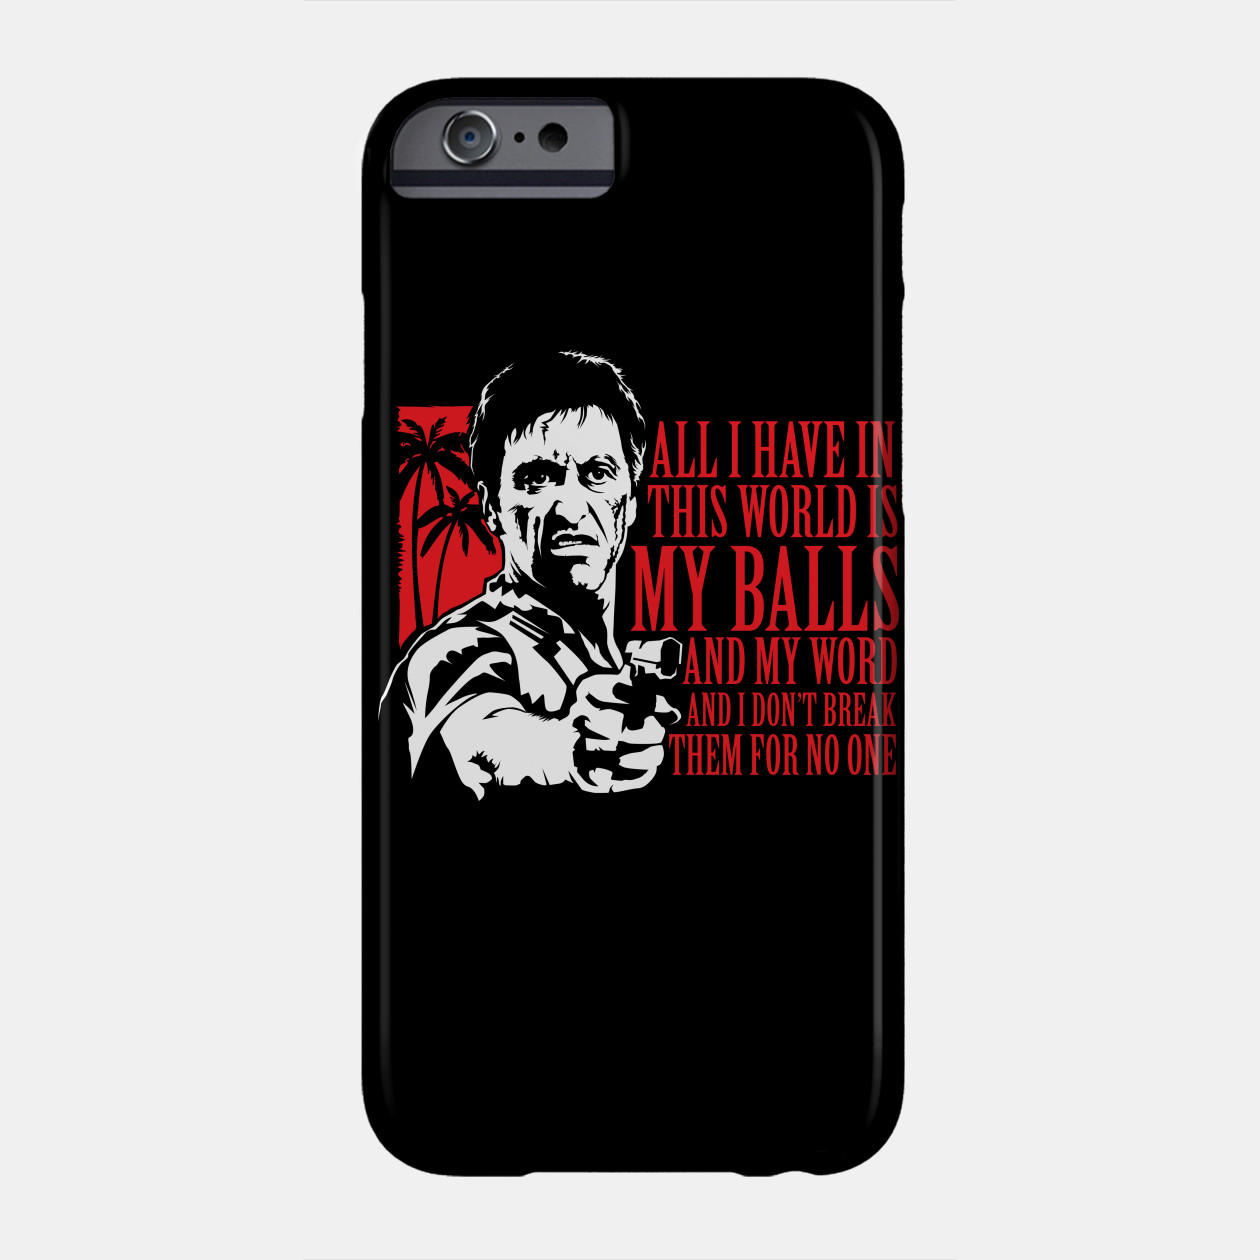 SCOZOS tony montana scarface phone case for iphone X 4 4s ... |Scarface Phone Case